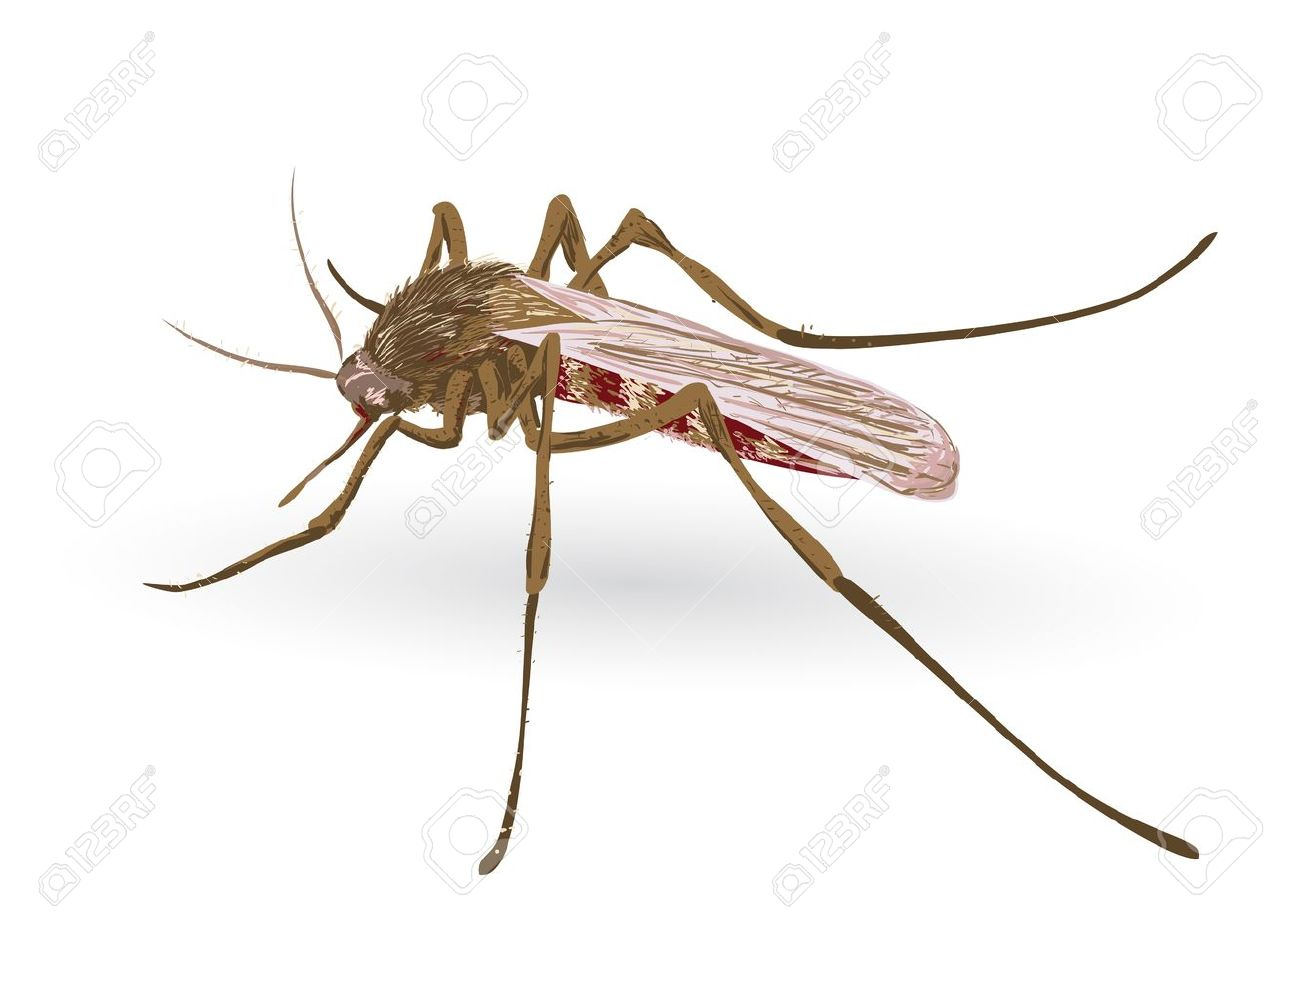 3 373 malaria mosquito stock vector illustration and royalty free